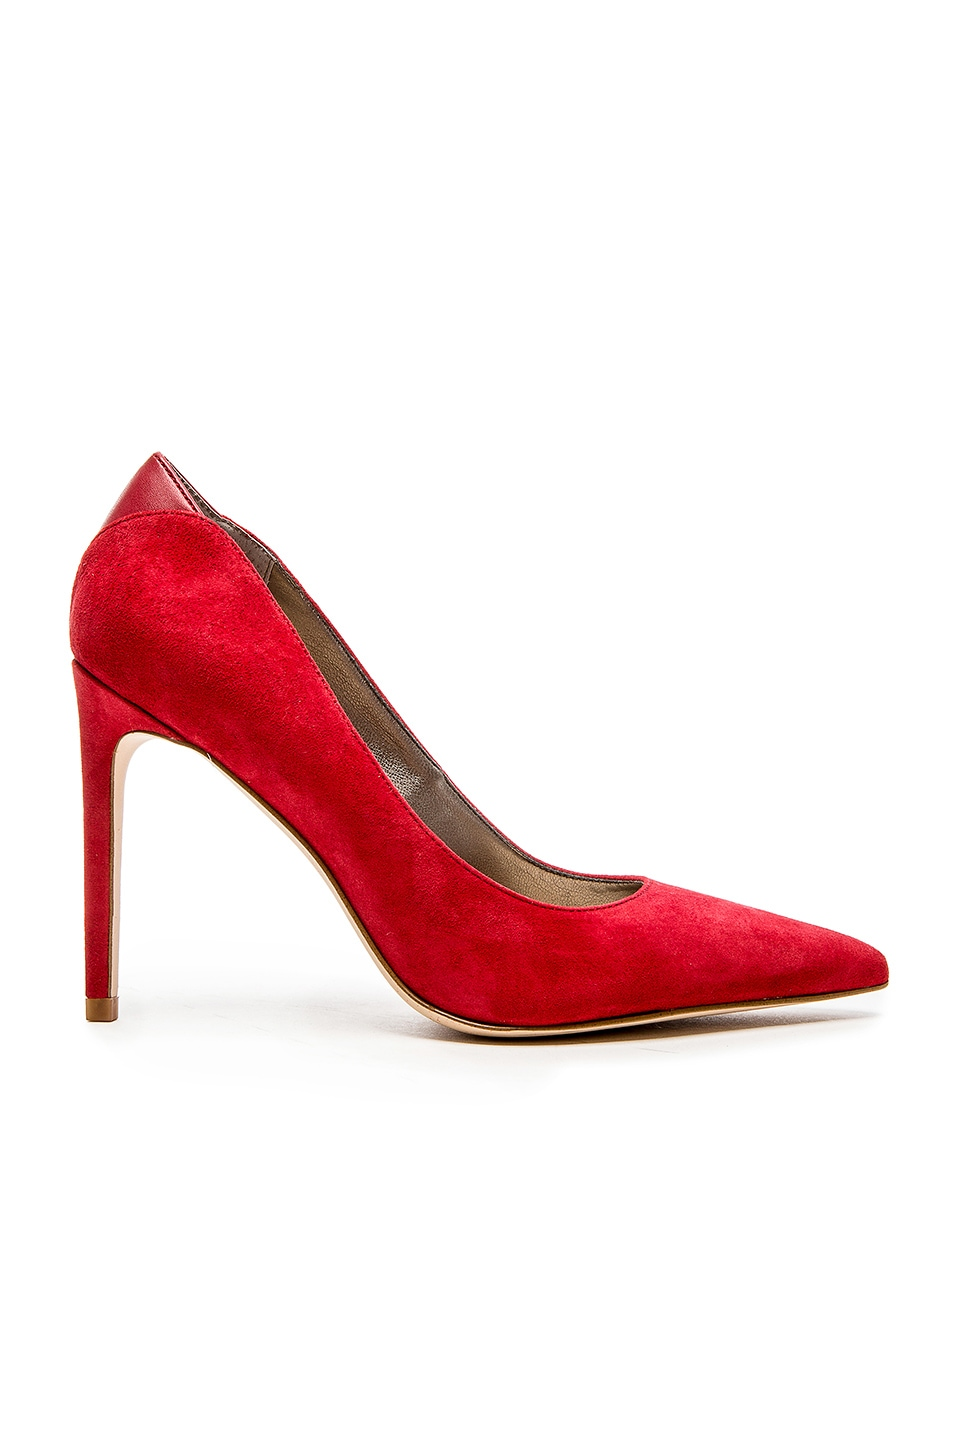 2cad8a05dad Sam Edelman Dea Heel in Desert Red | REVOLVE